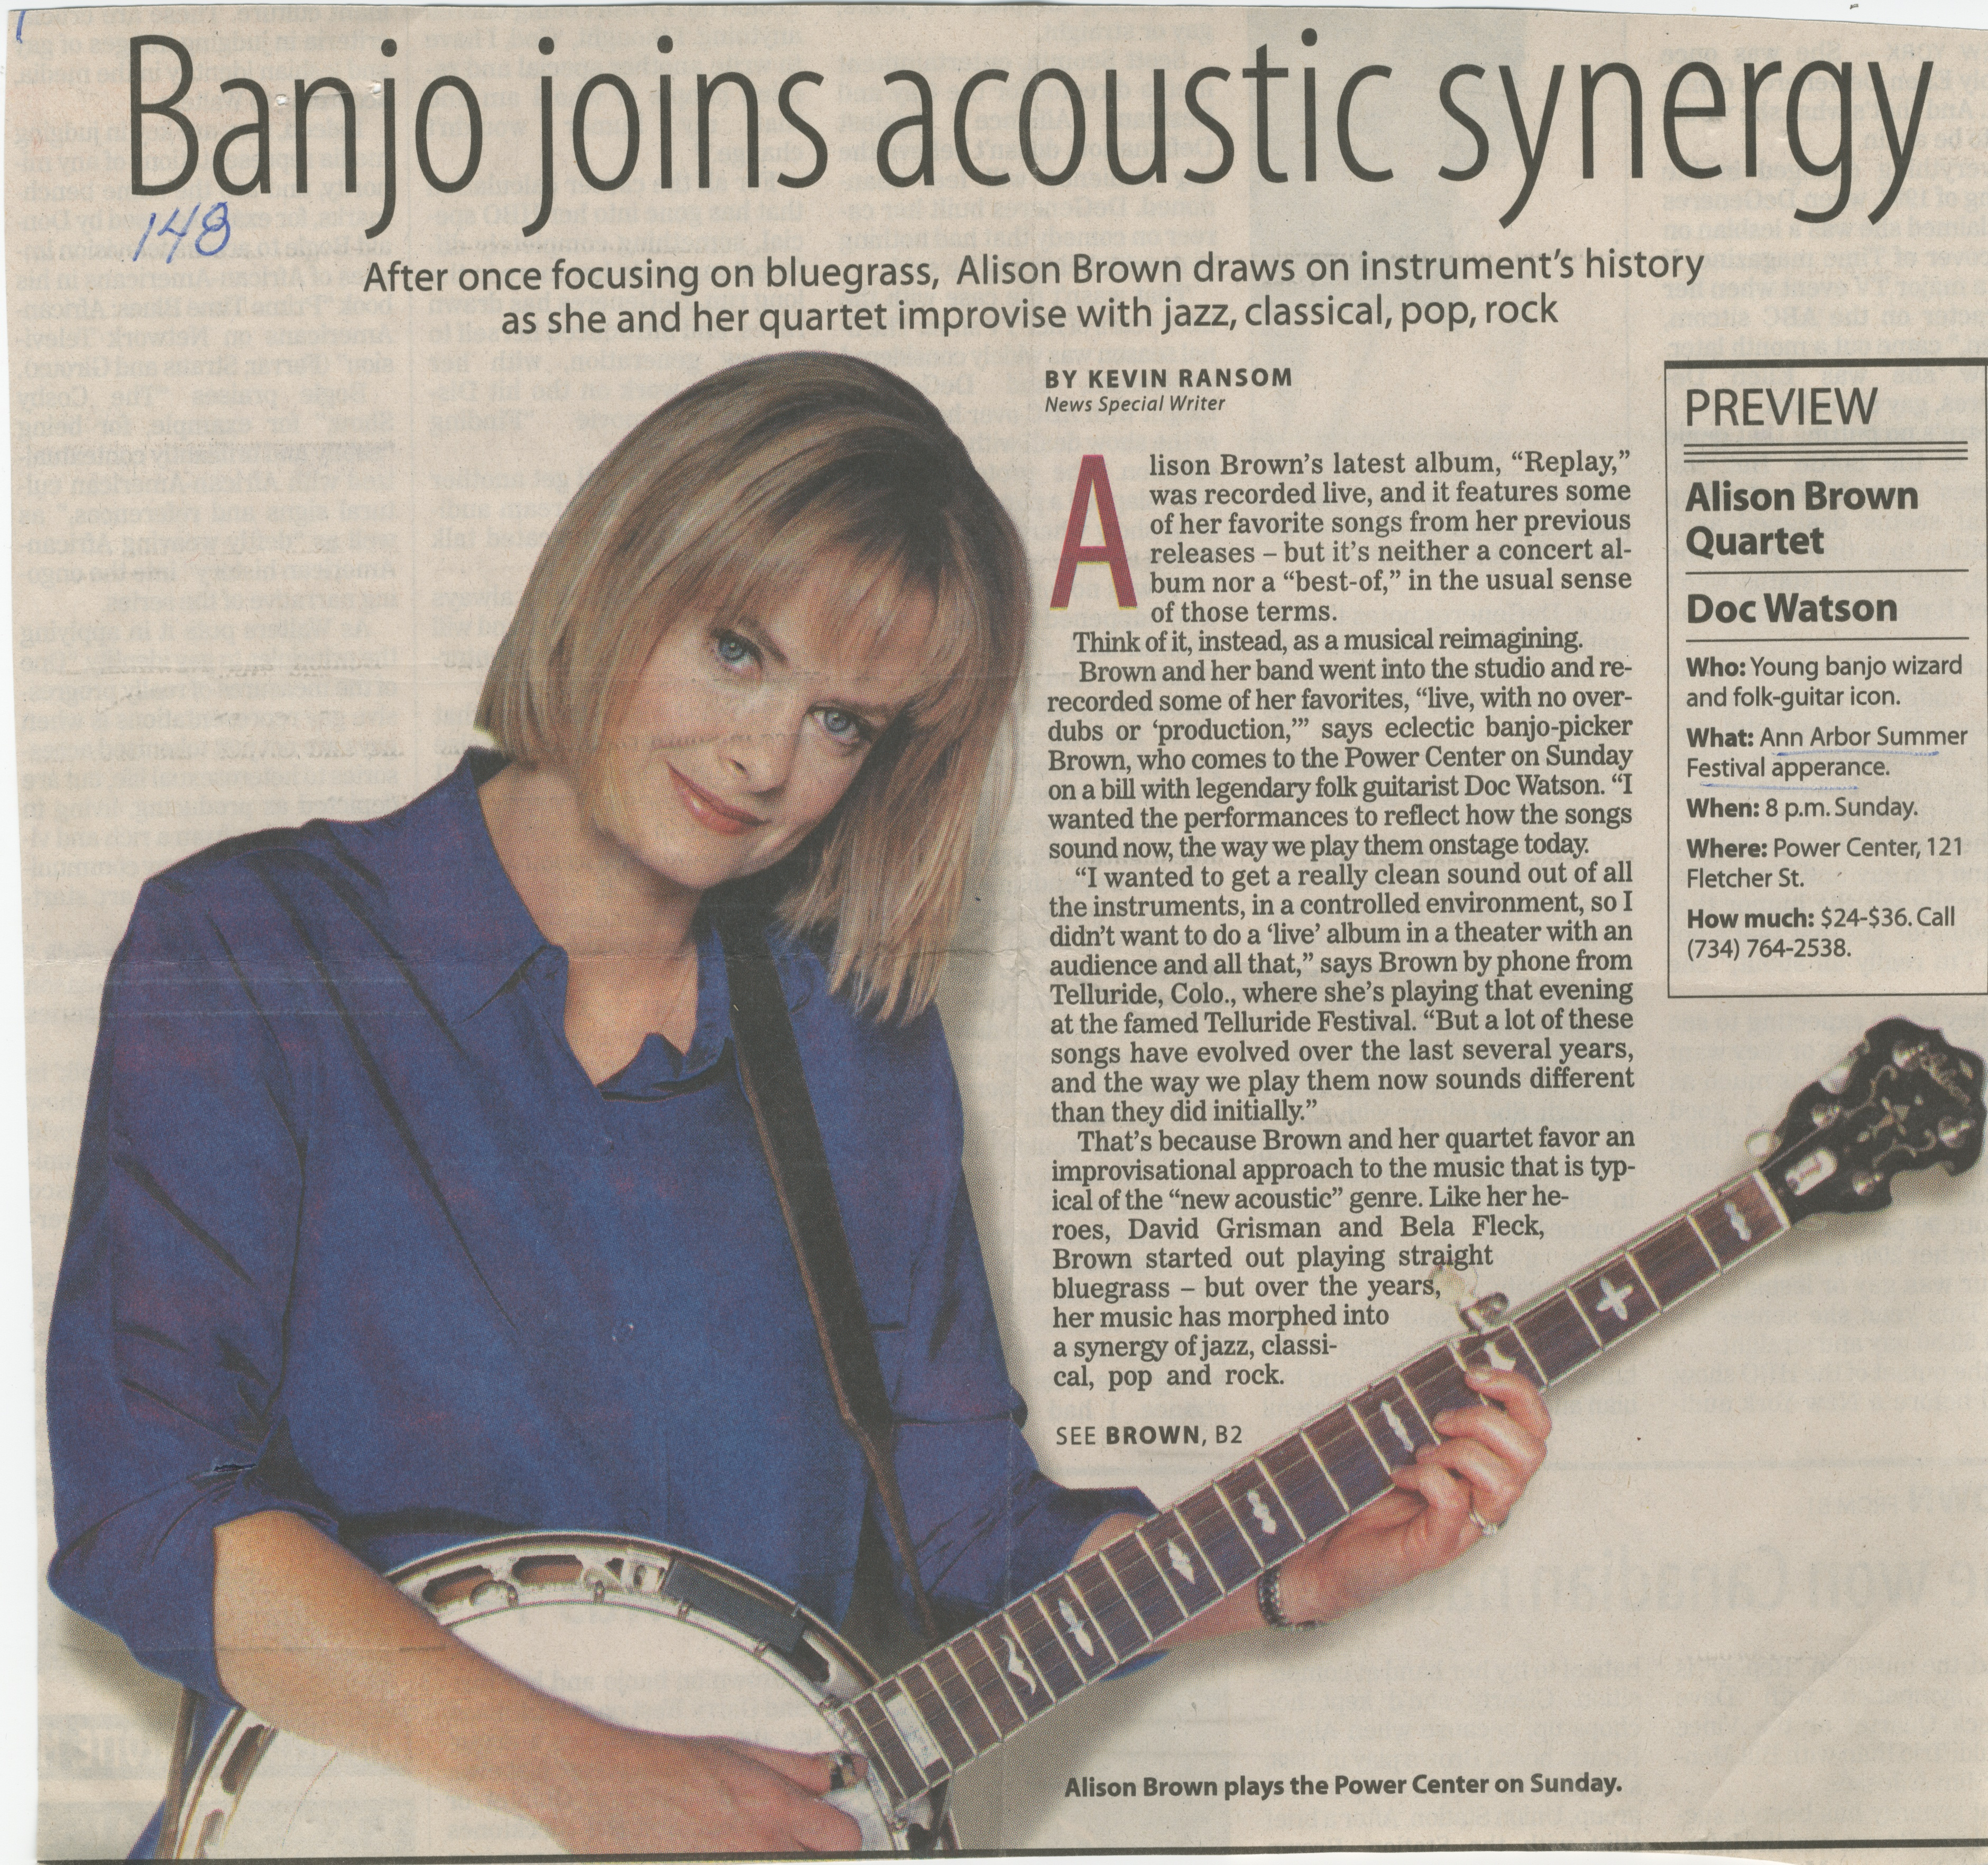 Banjo joins acoustic synergy image